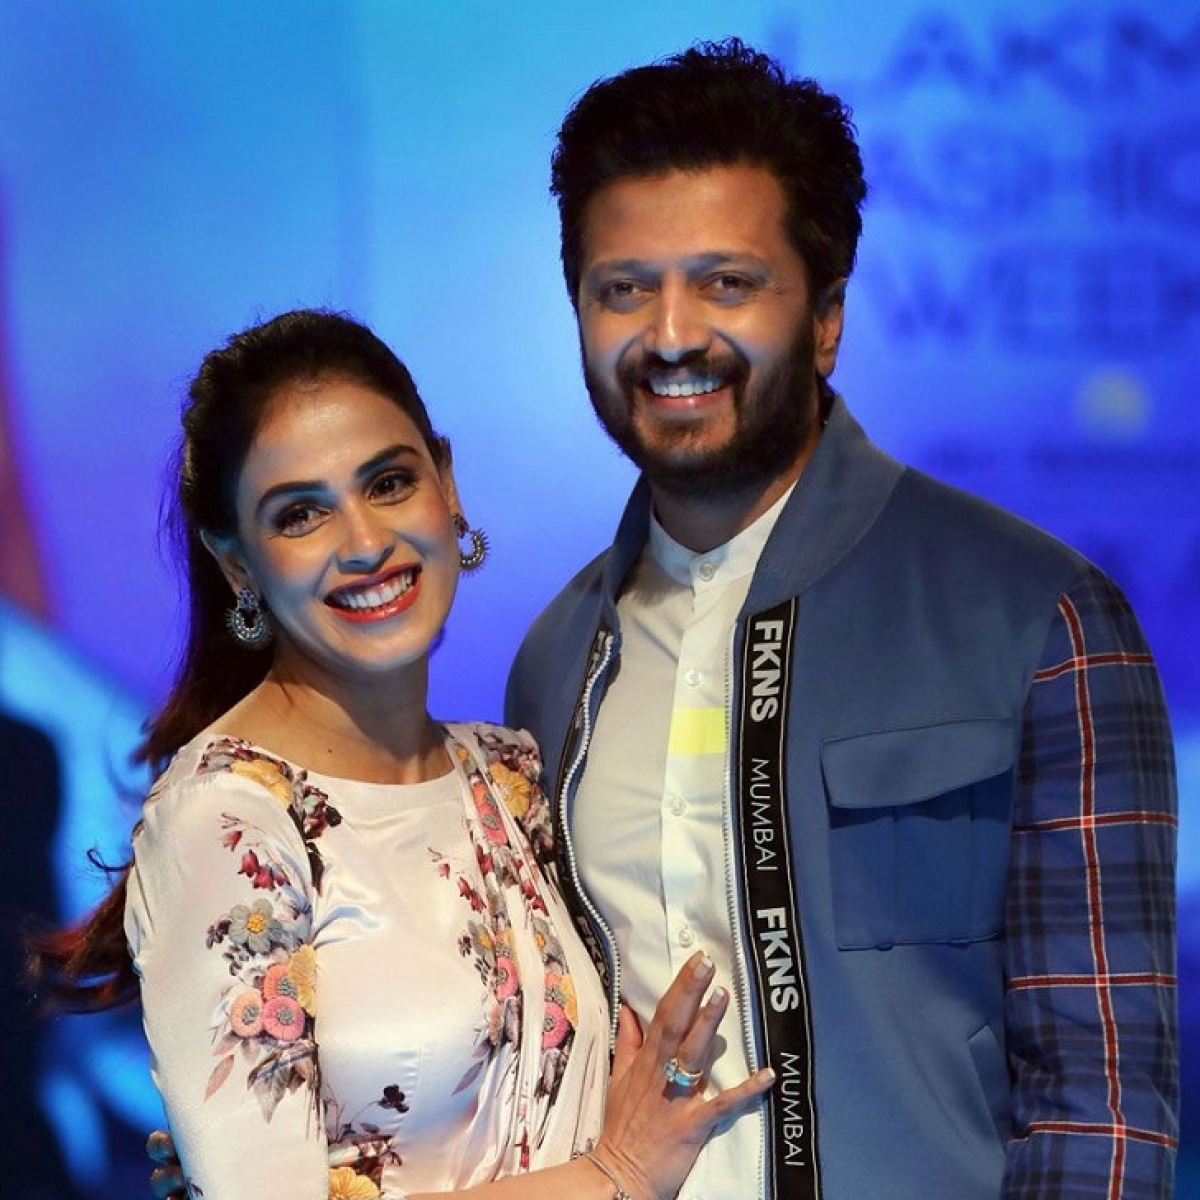 Riteish and Genelia Deshmukh pledge to donate their organs